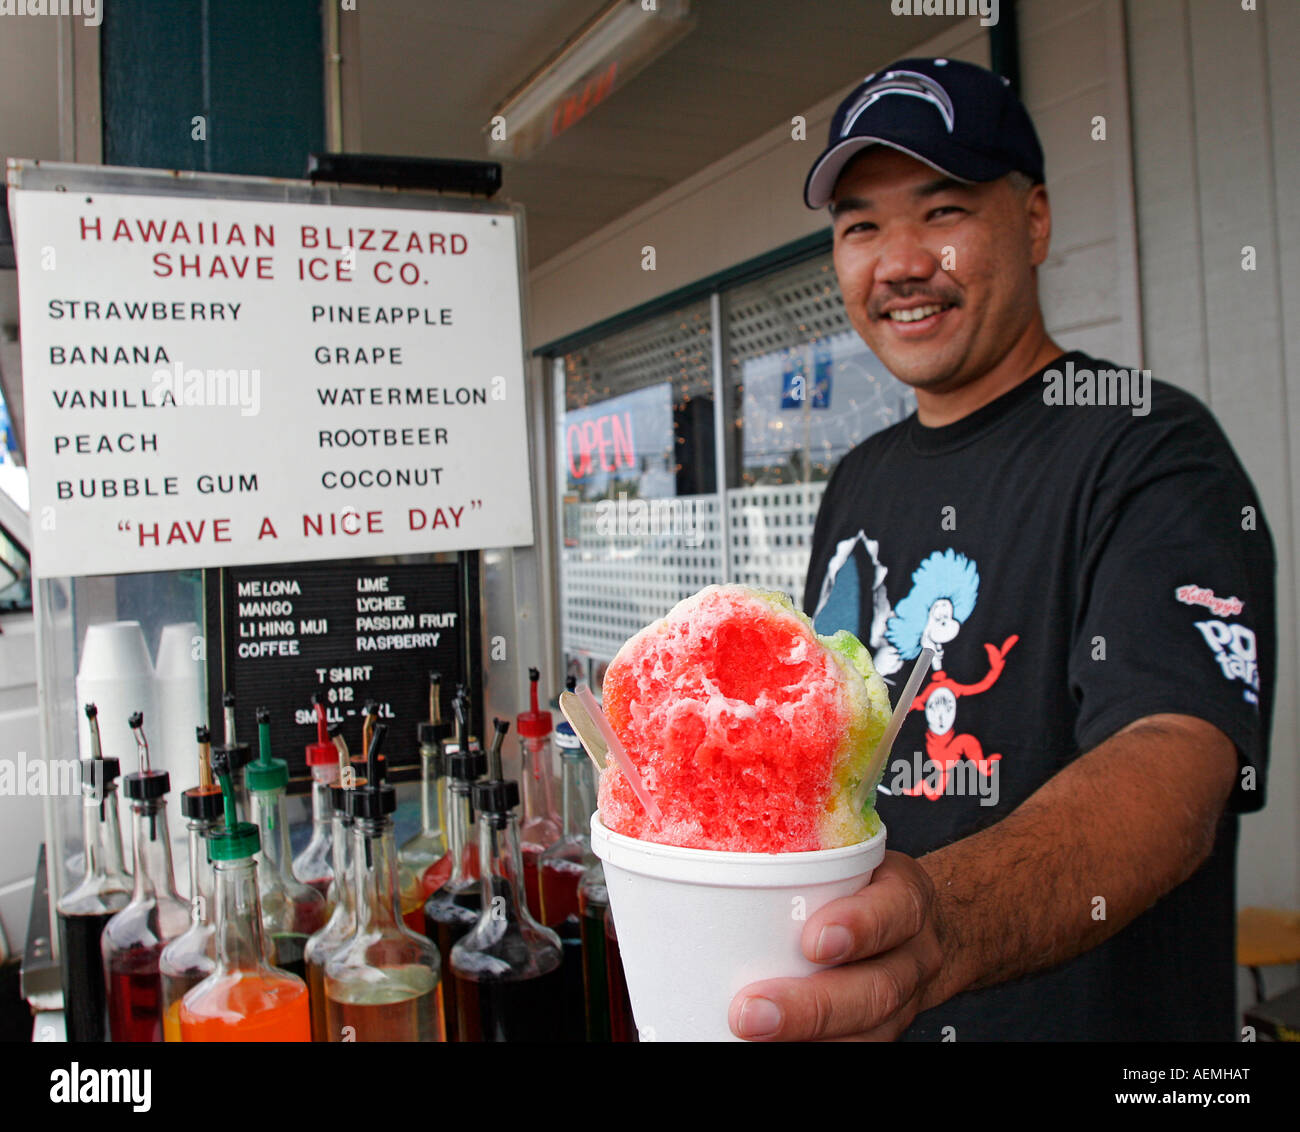 Hawaiian shaved ice syrup